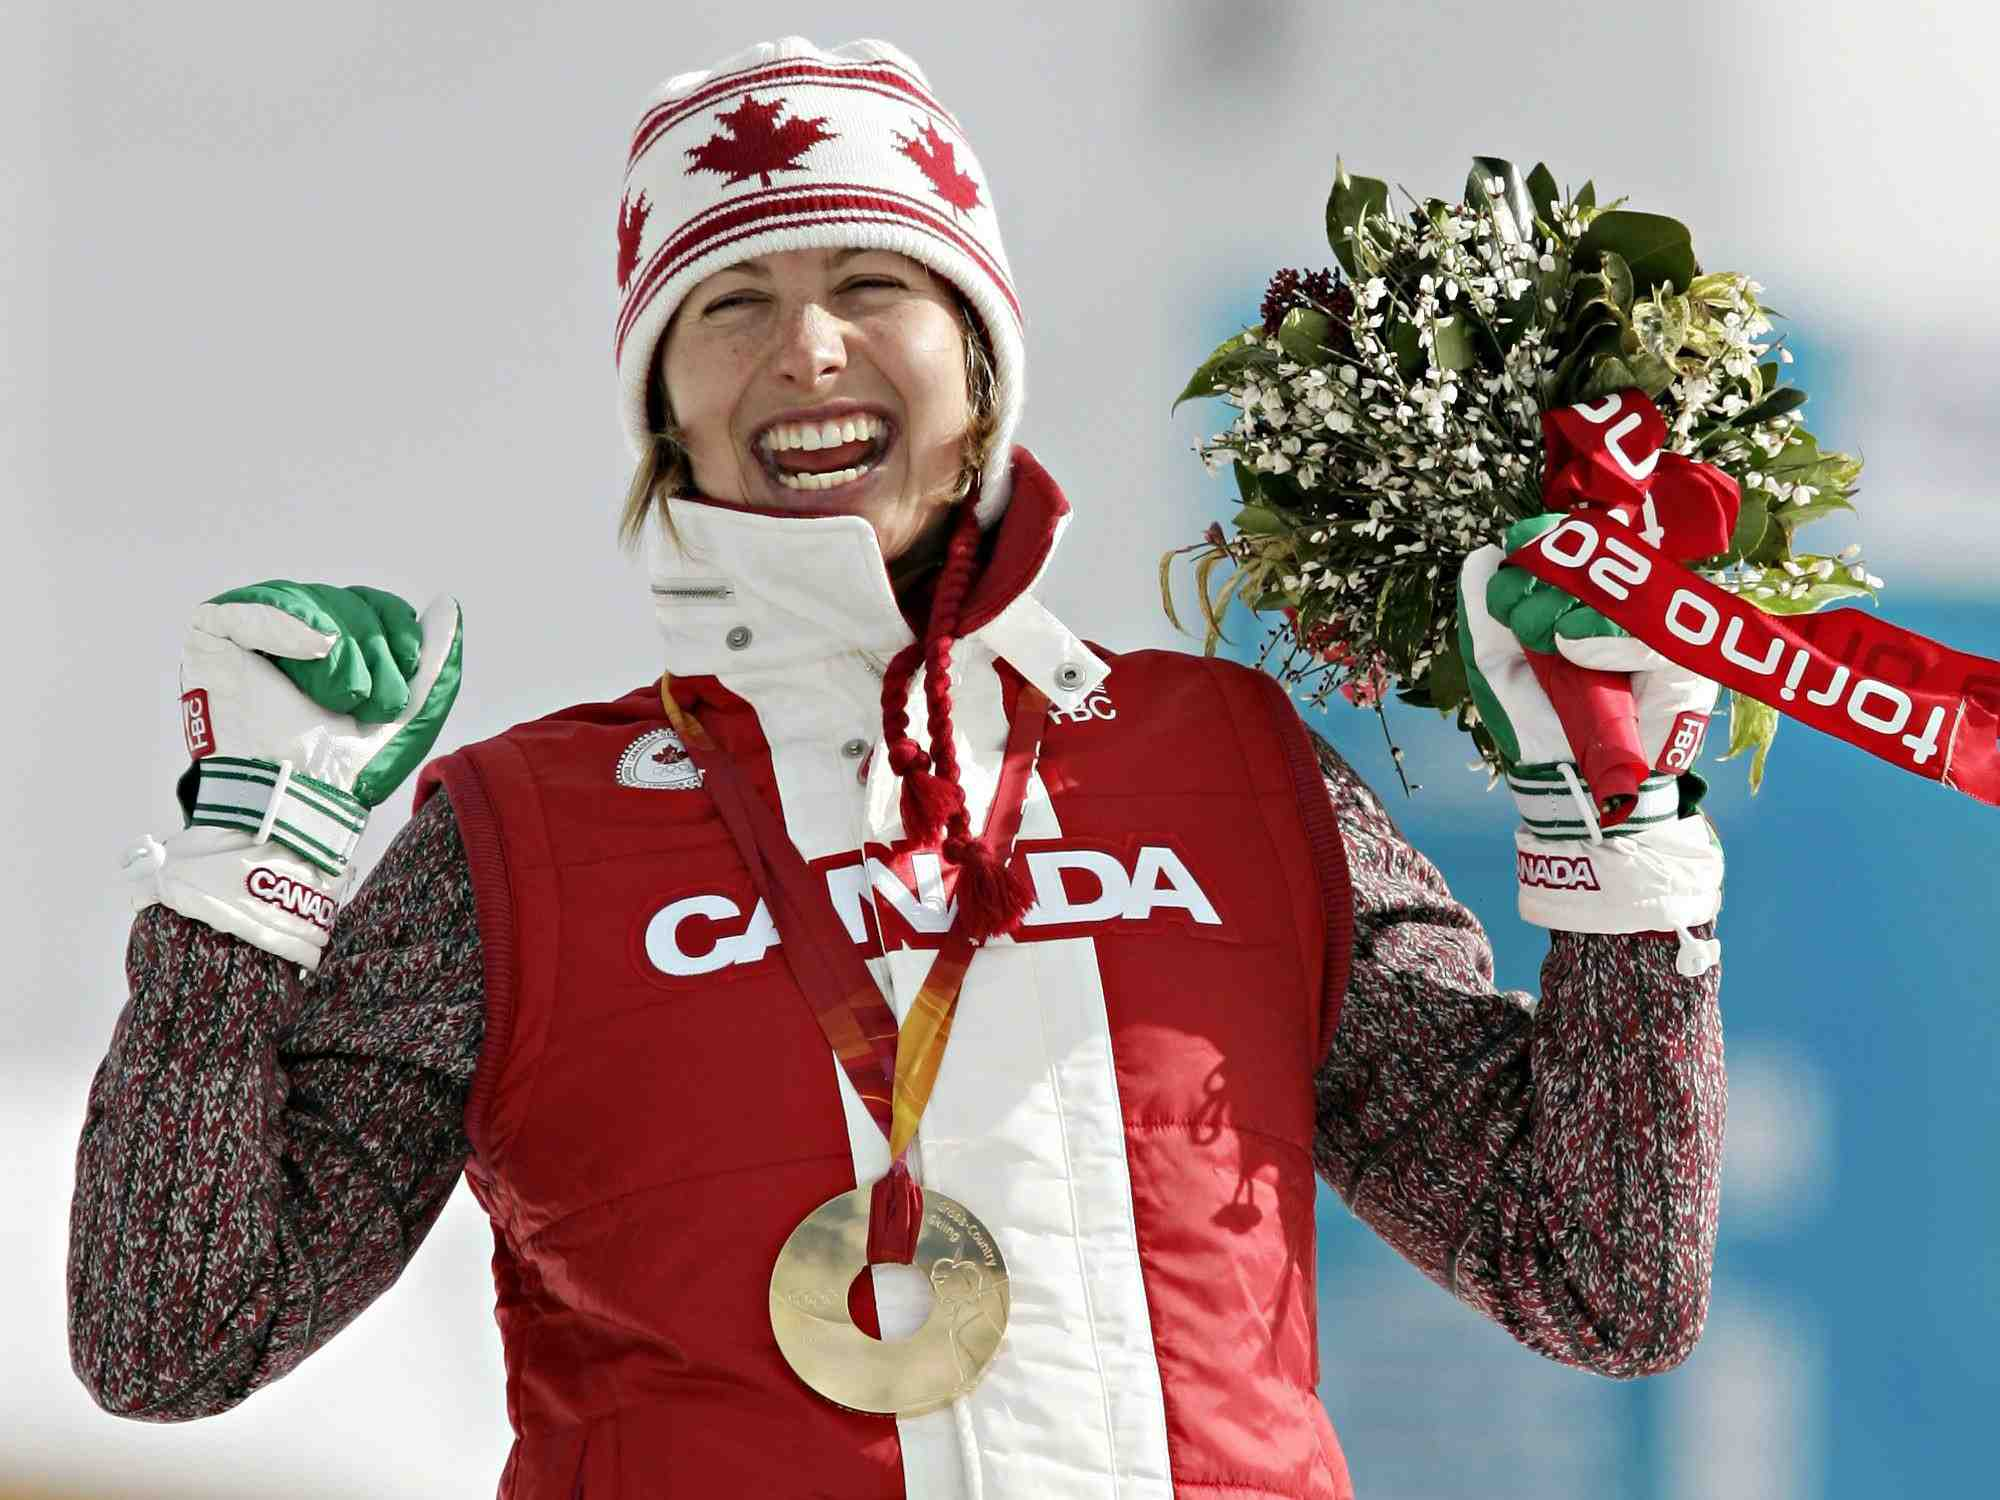 Cross-country skier Chandra Crawford of Canmore, Alta. celebrates her gold medal win in the women's sprint in Pragelato Plan, Italy on Wednesday, Feb. 22, 2006.(CP PHOTO/COC/Jonathan Hayward)